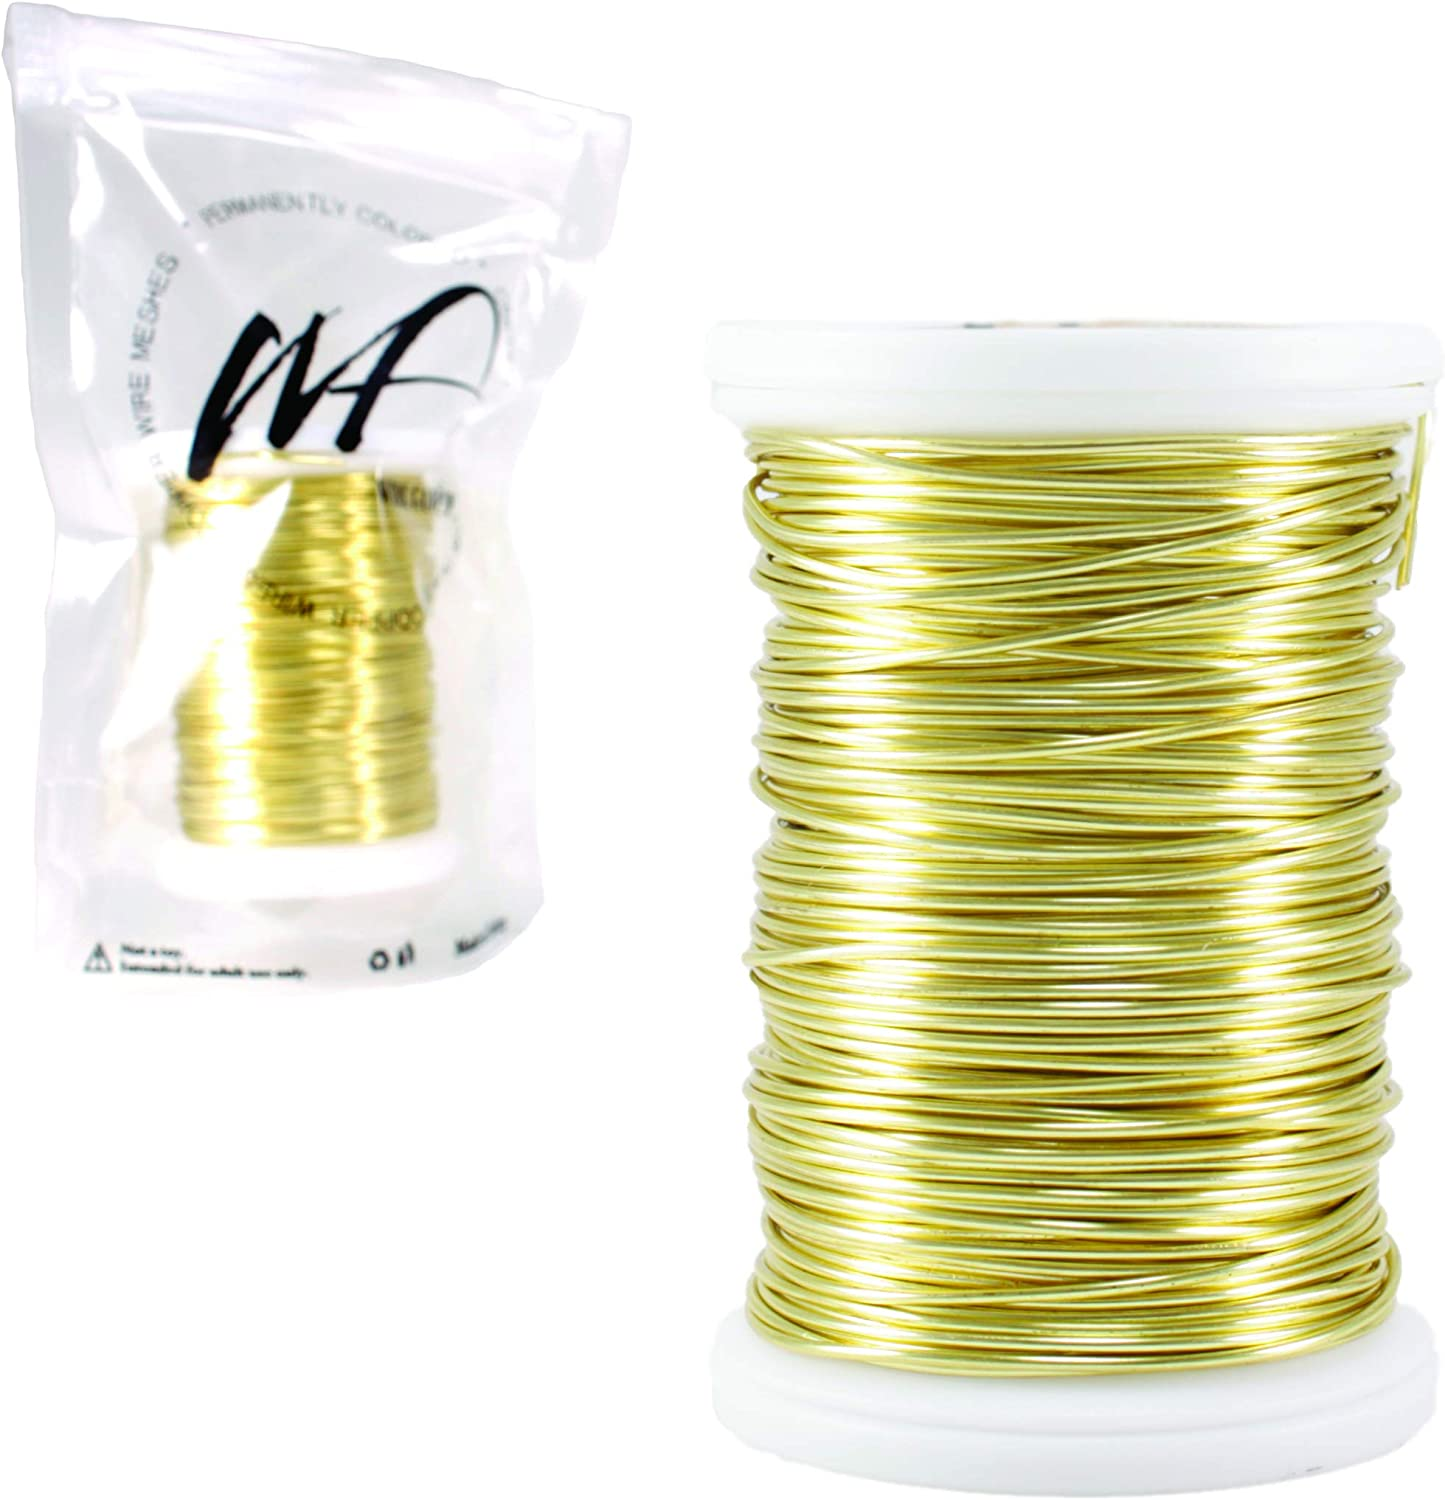 Wire Fancy 18 Gauge Tarnish Resistant Silver-Plated Copper and Copper Jewelry Making Wire 15 Yards 45 feet 18 Gauge, Bulk Copper 100 Grams